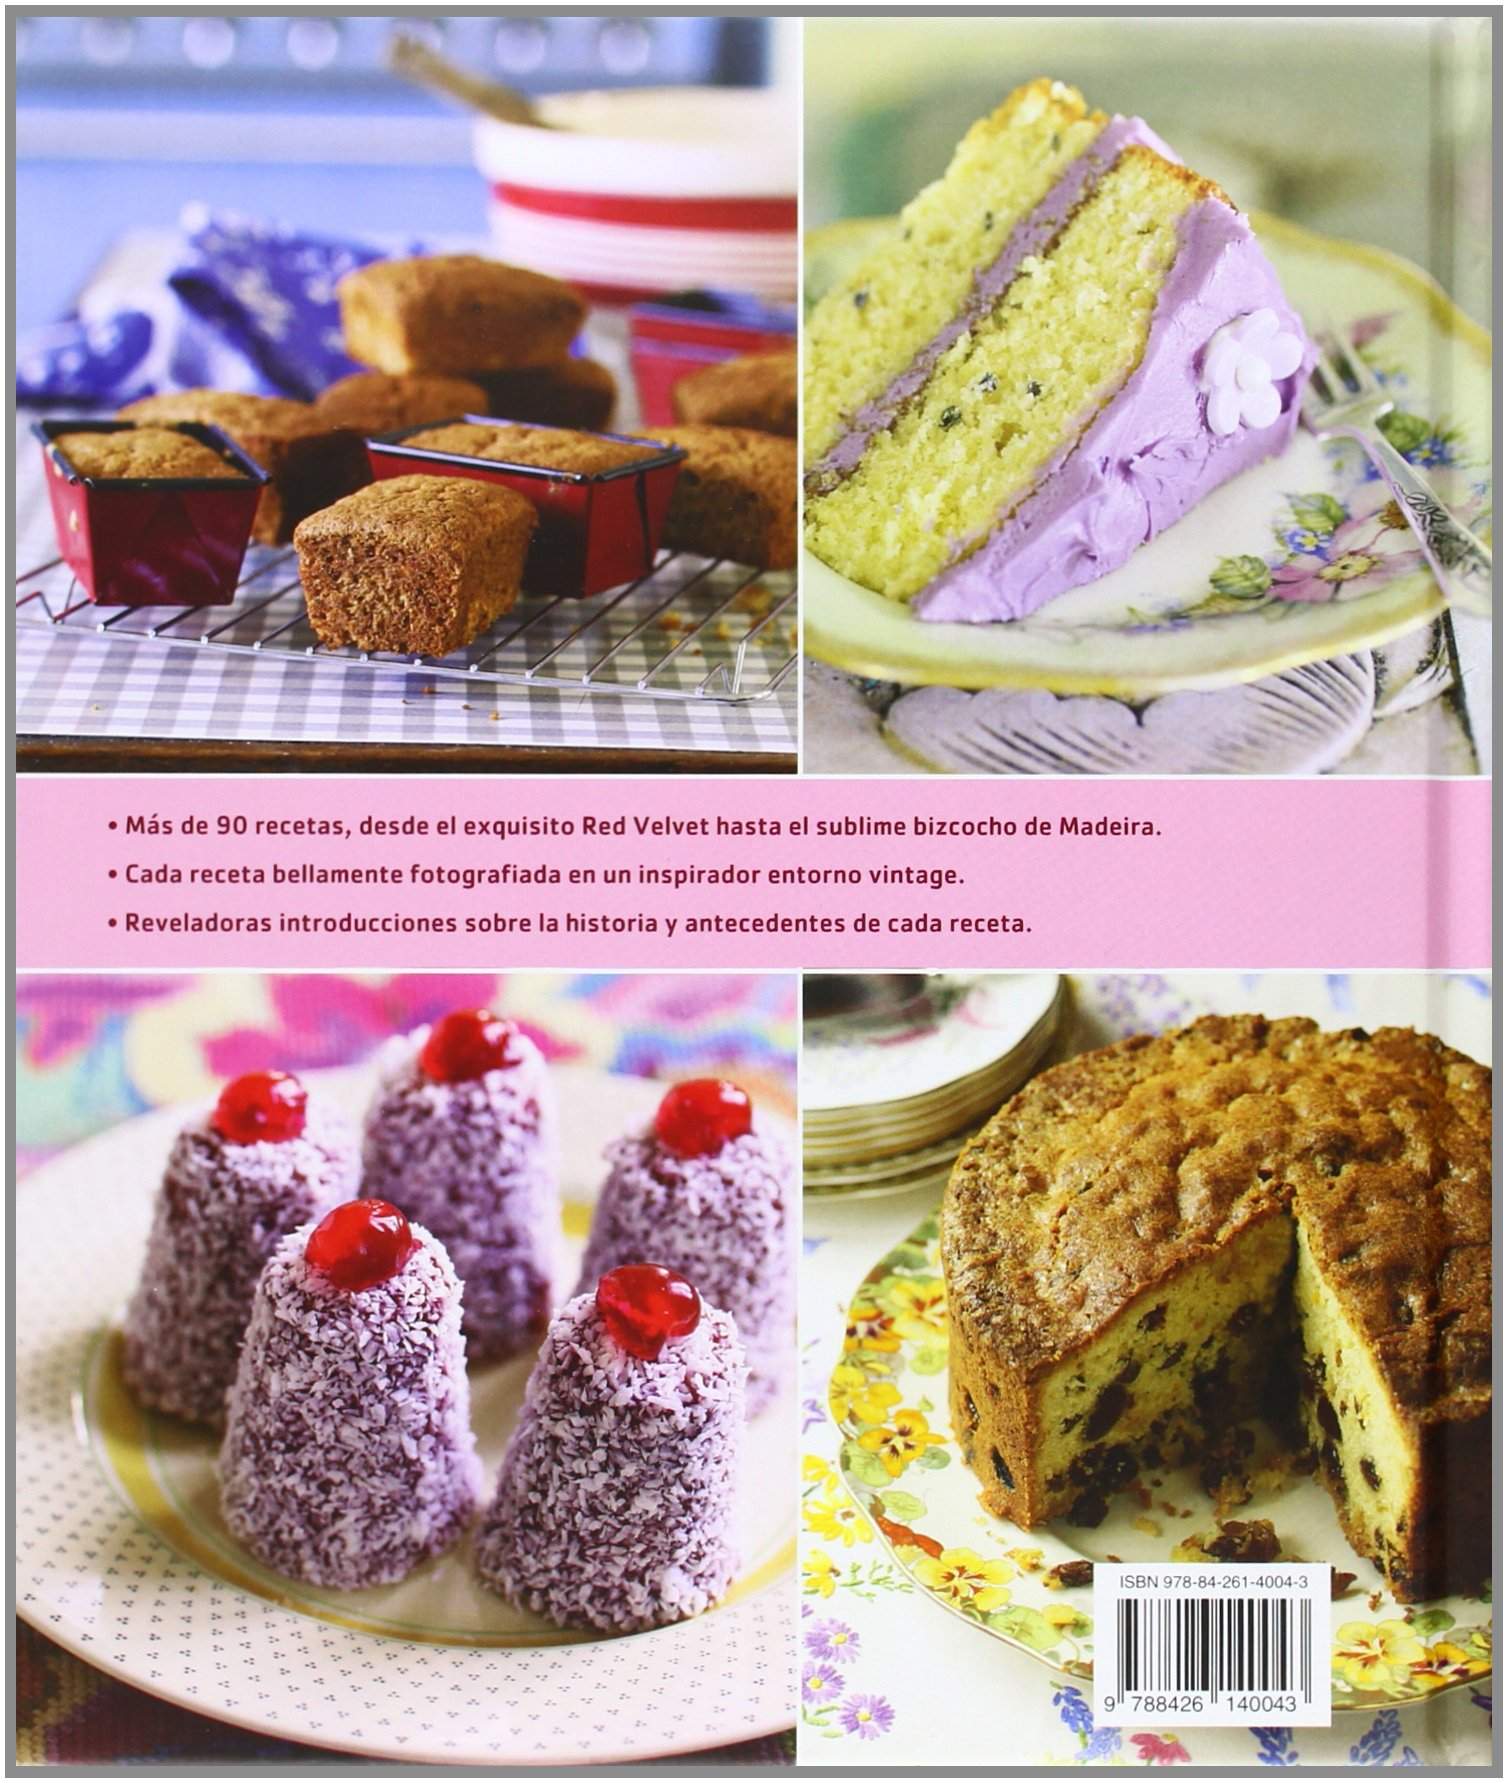 Pasteles vintage (Spanish Edition): Jane Brocket, Juventud: 9788426140043: Amazon.com: Books